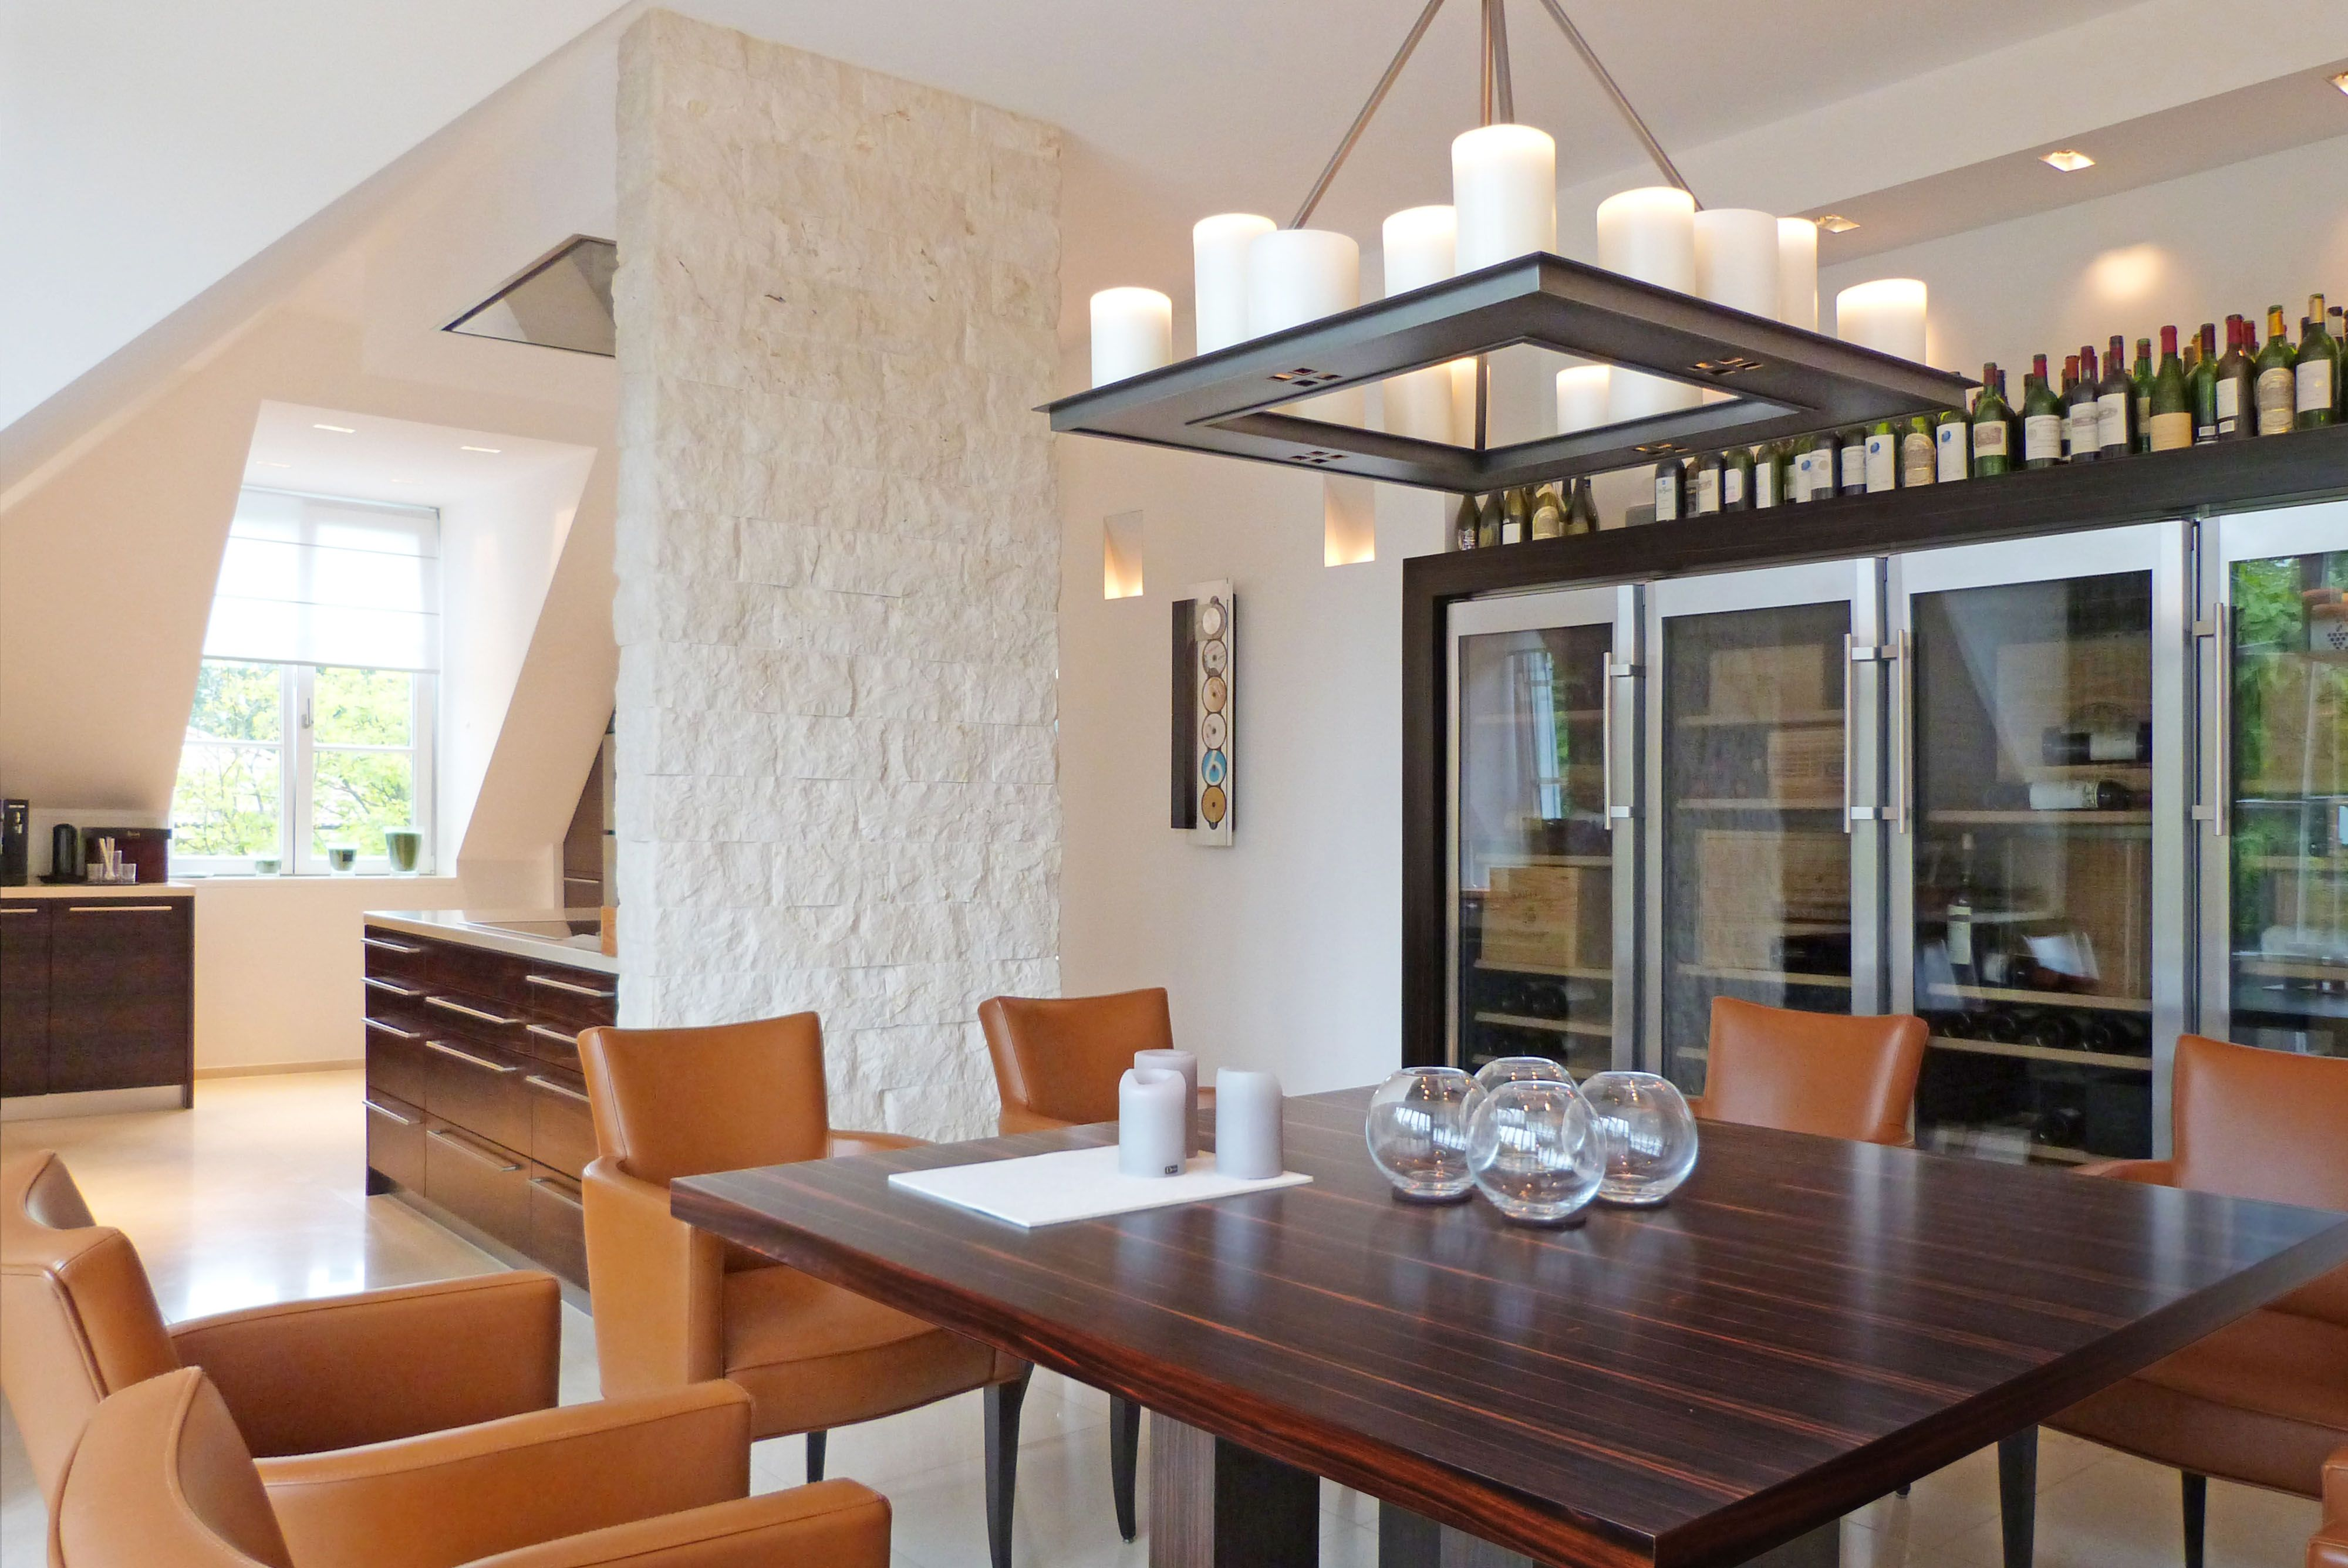 Spectacular  Penthouse in D sseldorf for Sale by beyond REAL ESTATE